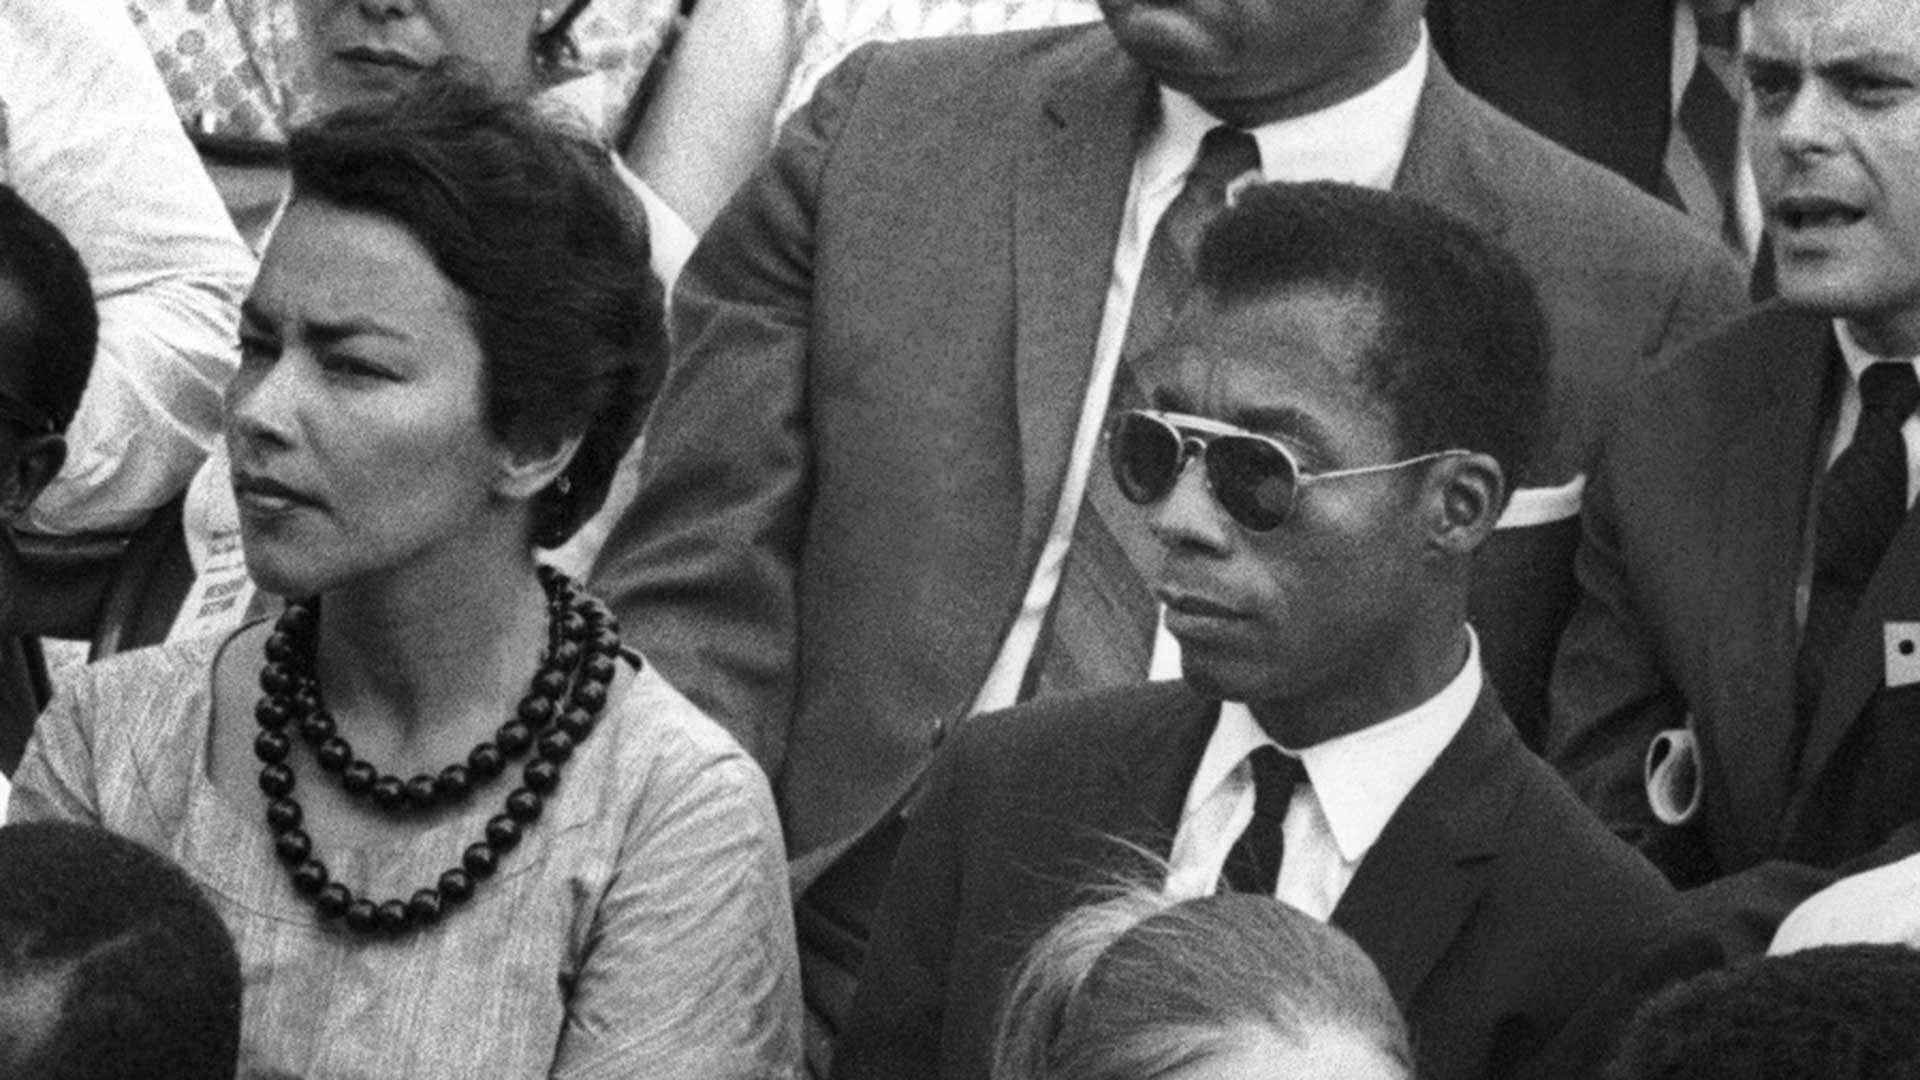 James Baldwin in the crowd. March on Washington for Jobs and Freedom, 28 August 1963, Washington